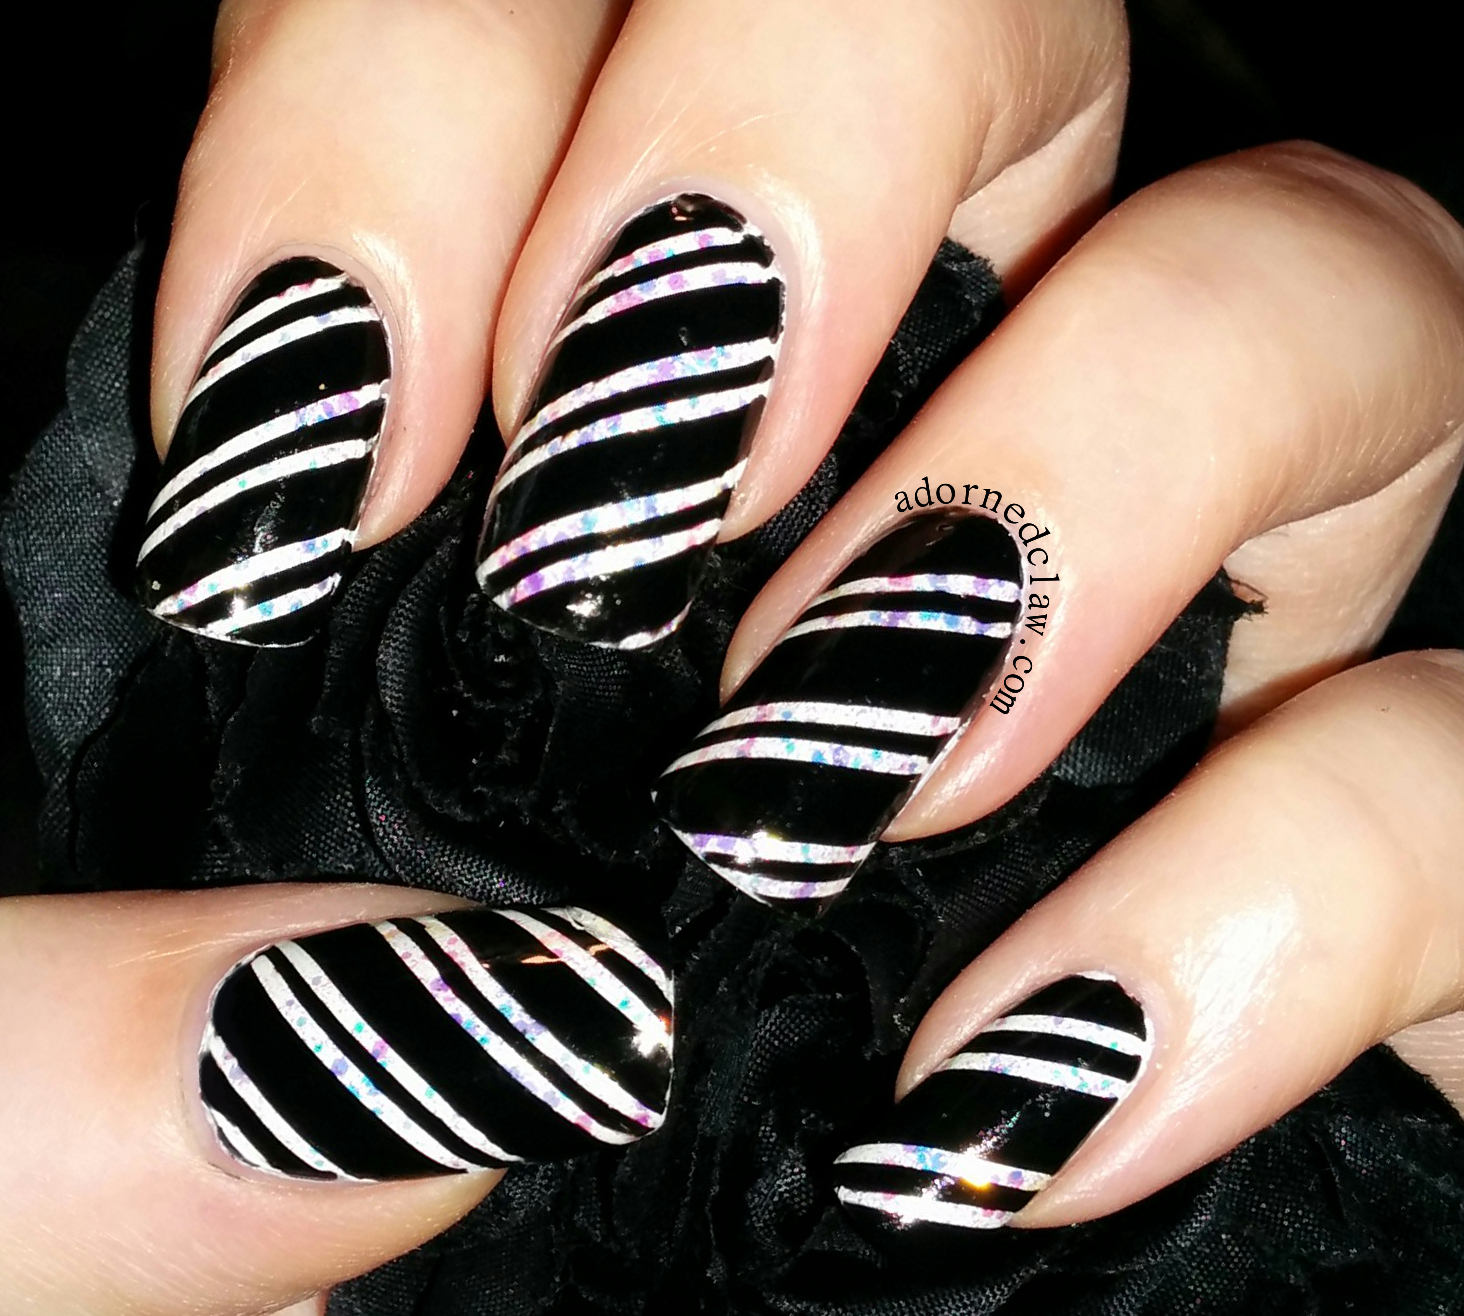 Black and white candy cane nails the adorned claw black and white candy cane nail art prinsesfo Image collections